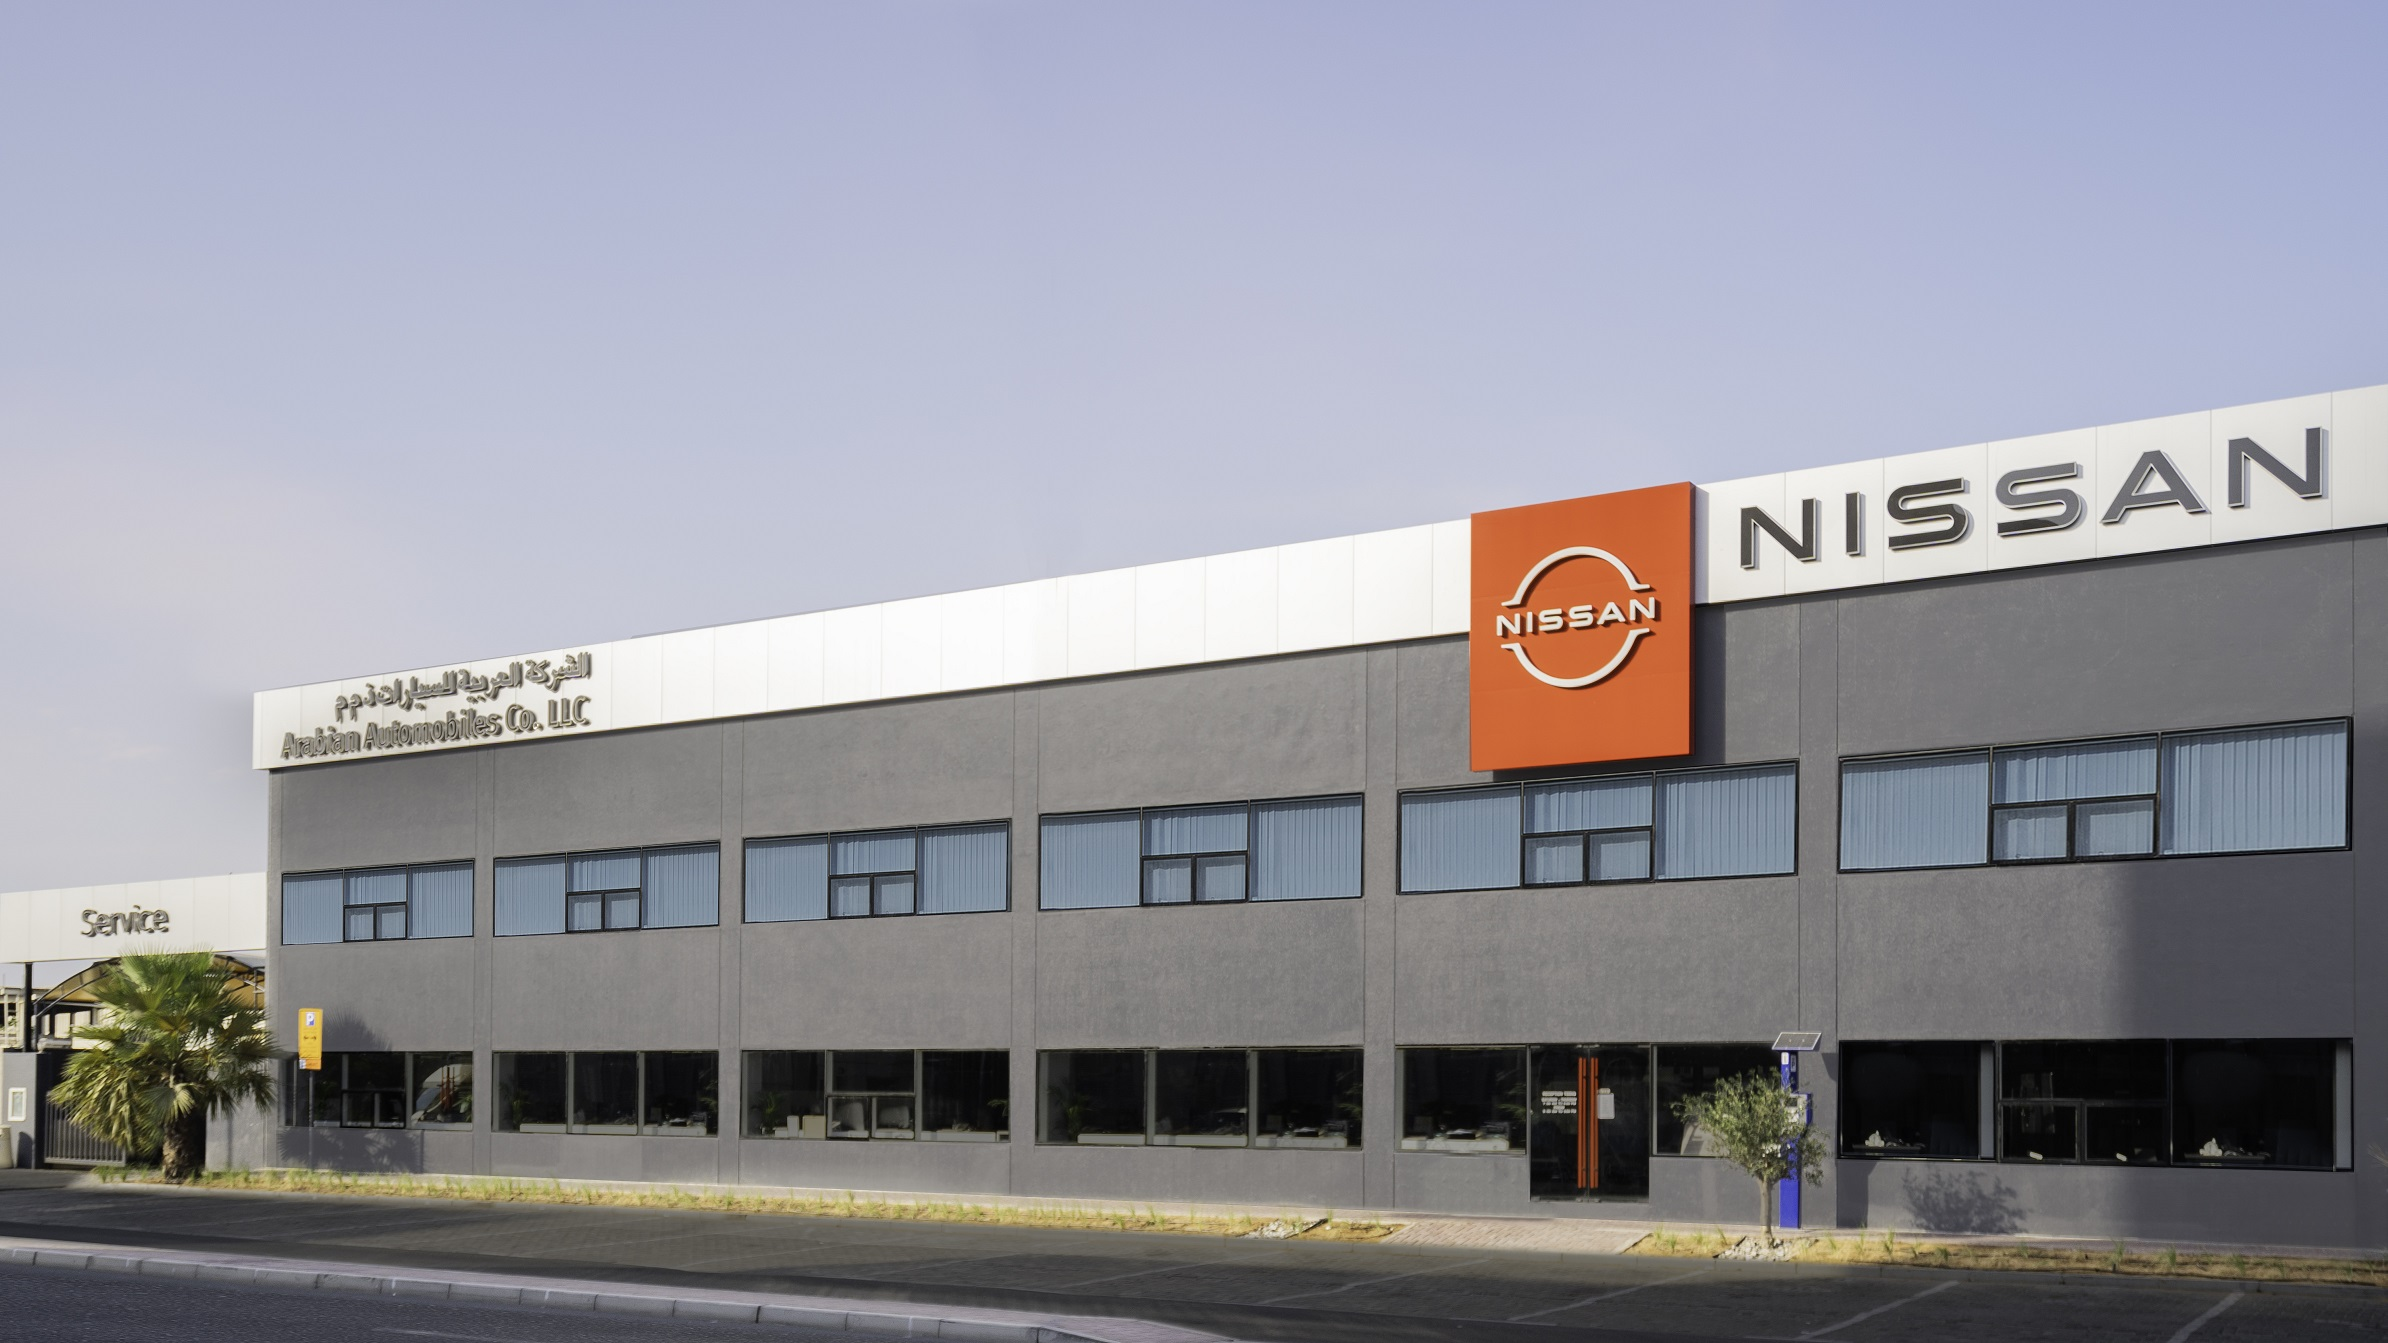 Arabian Automobiles debuts new Nissan retail identity in its service center on Sheikh Zayed Road